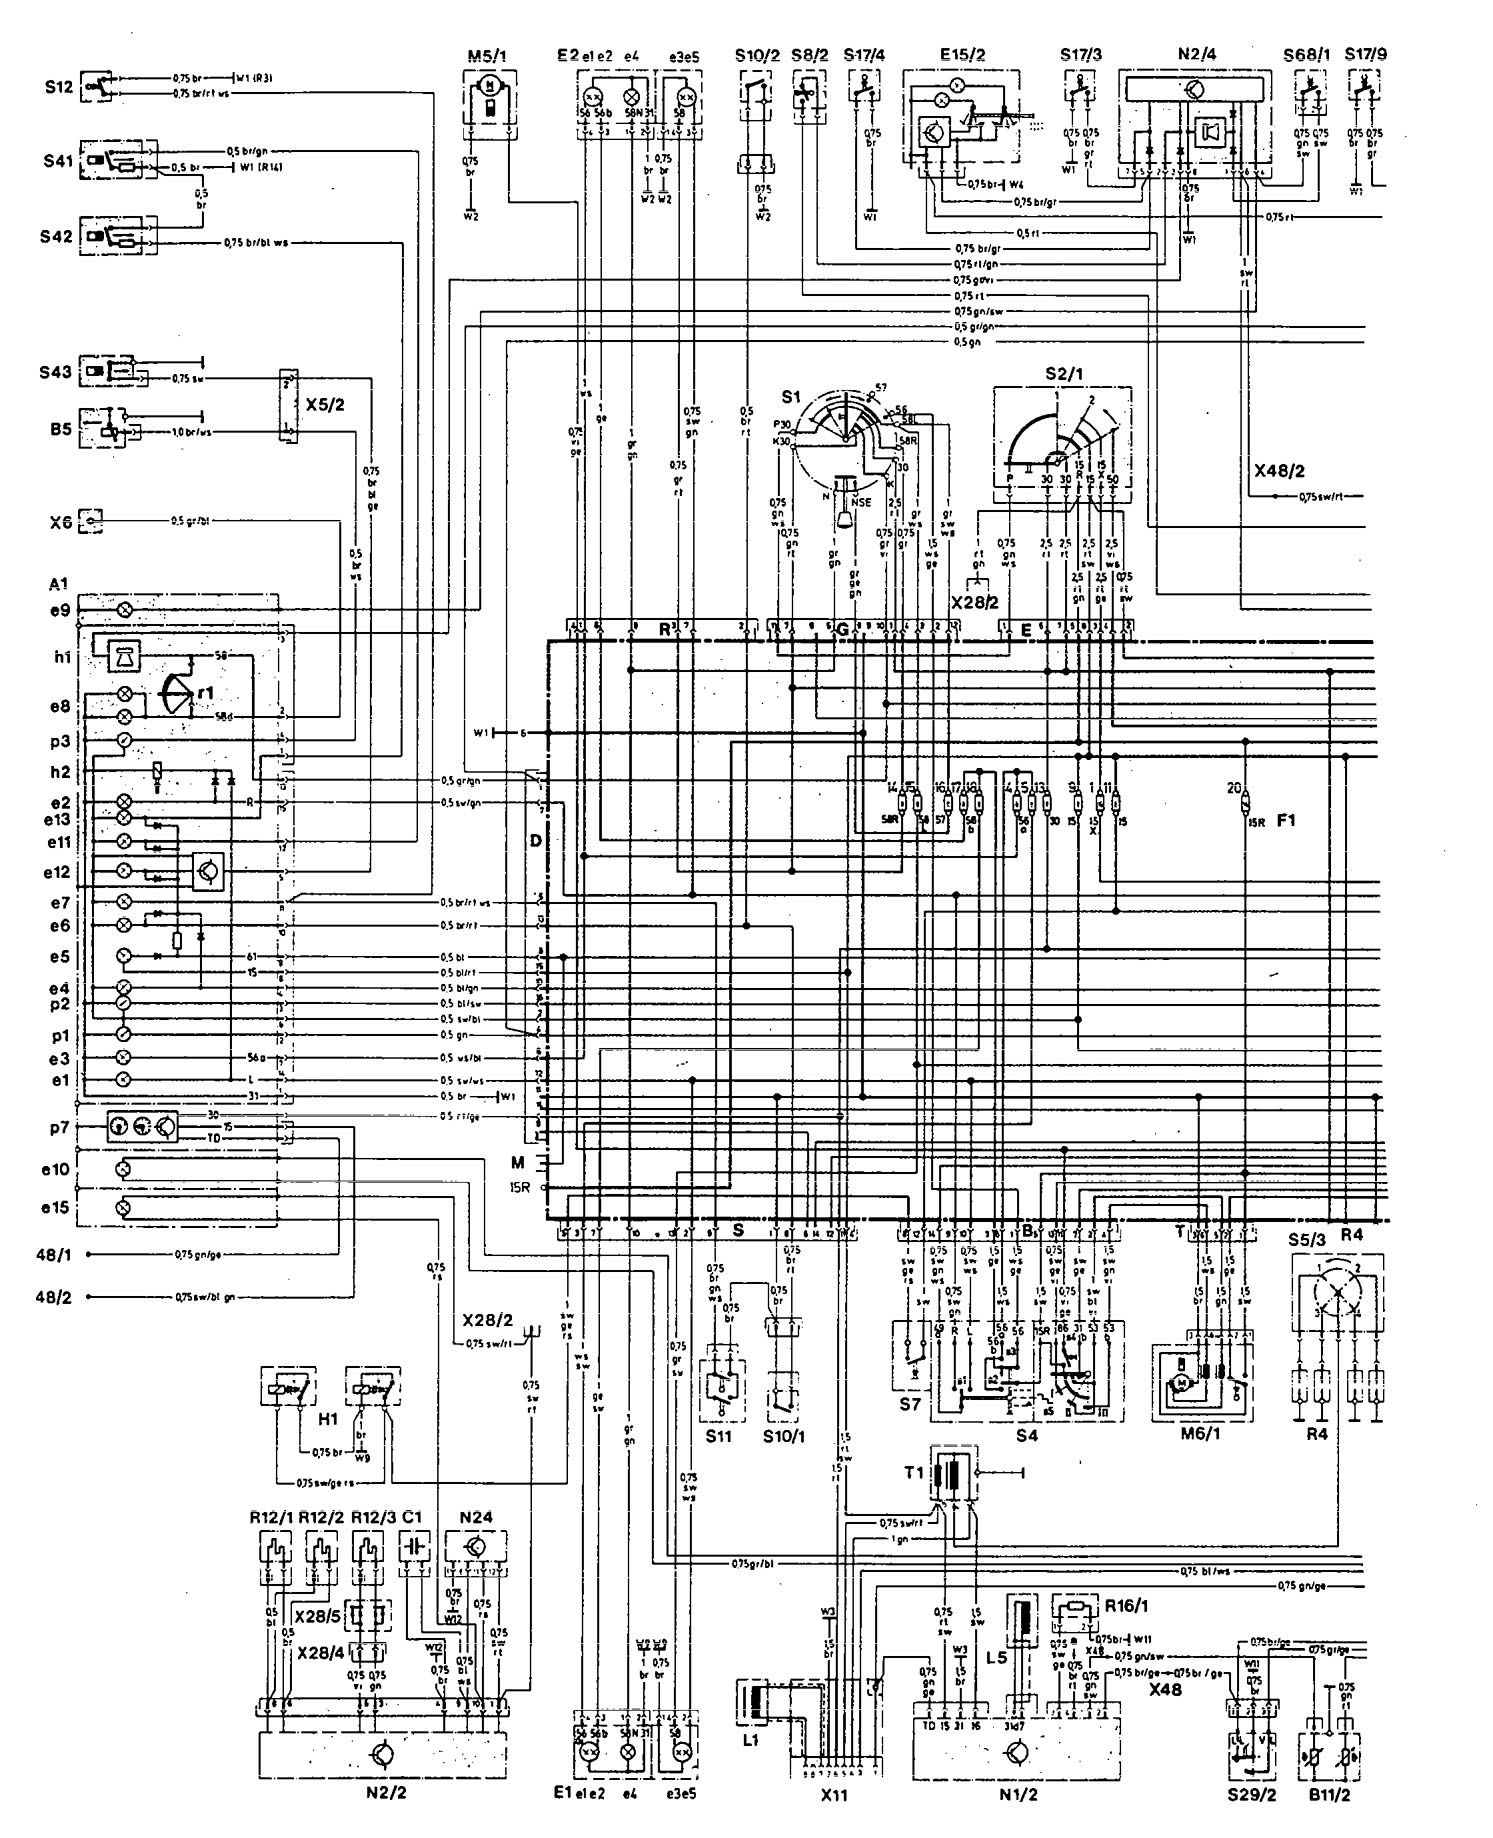 mercedes 190e 1992 wiring diagrams ignition carknowledge rh carknowledge info mercedes 190 sl wiring diagram Mercedes-Benz Radio Wiring Diagram for 2013